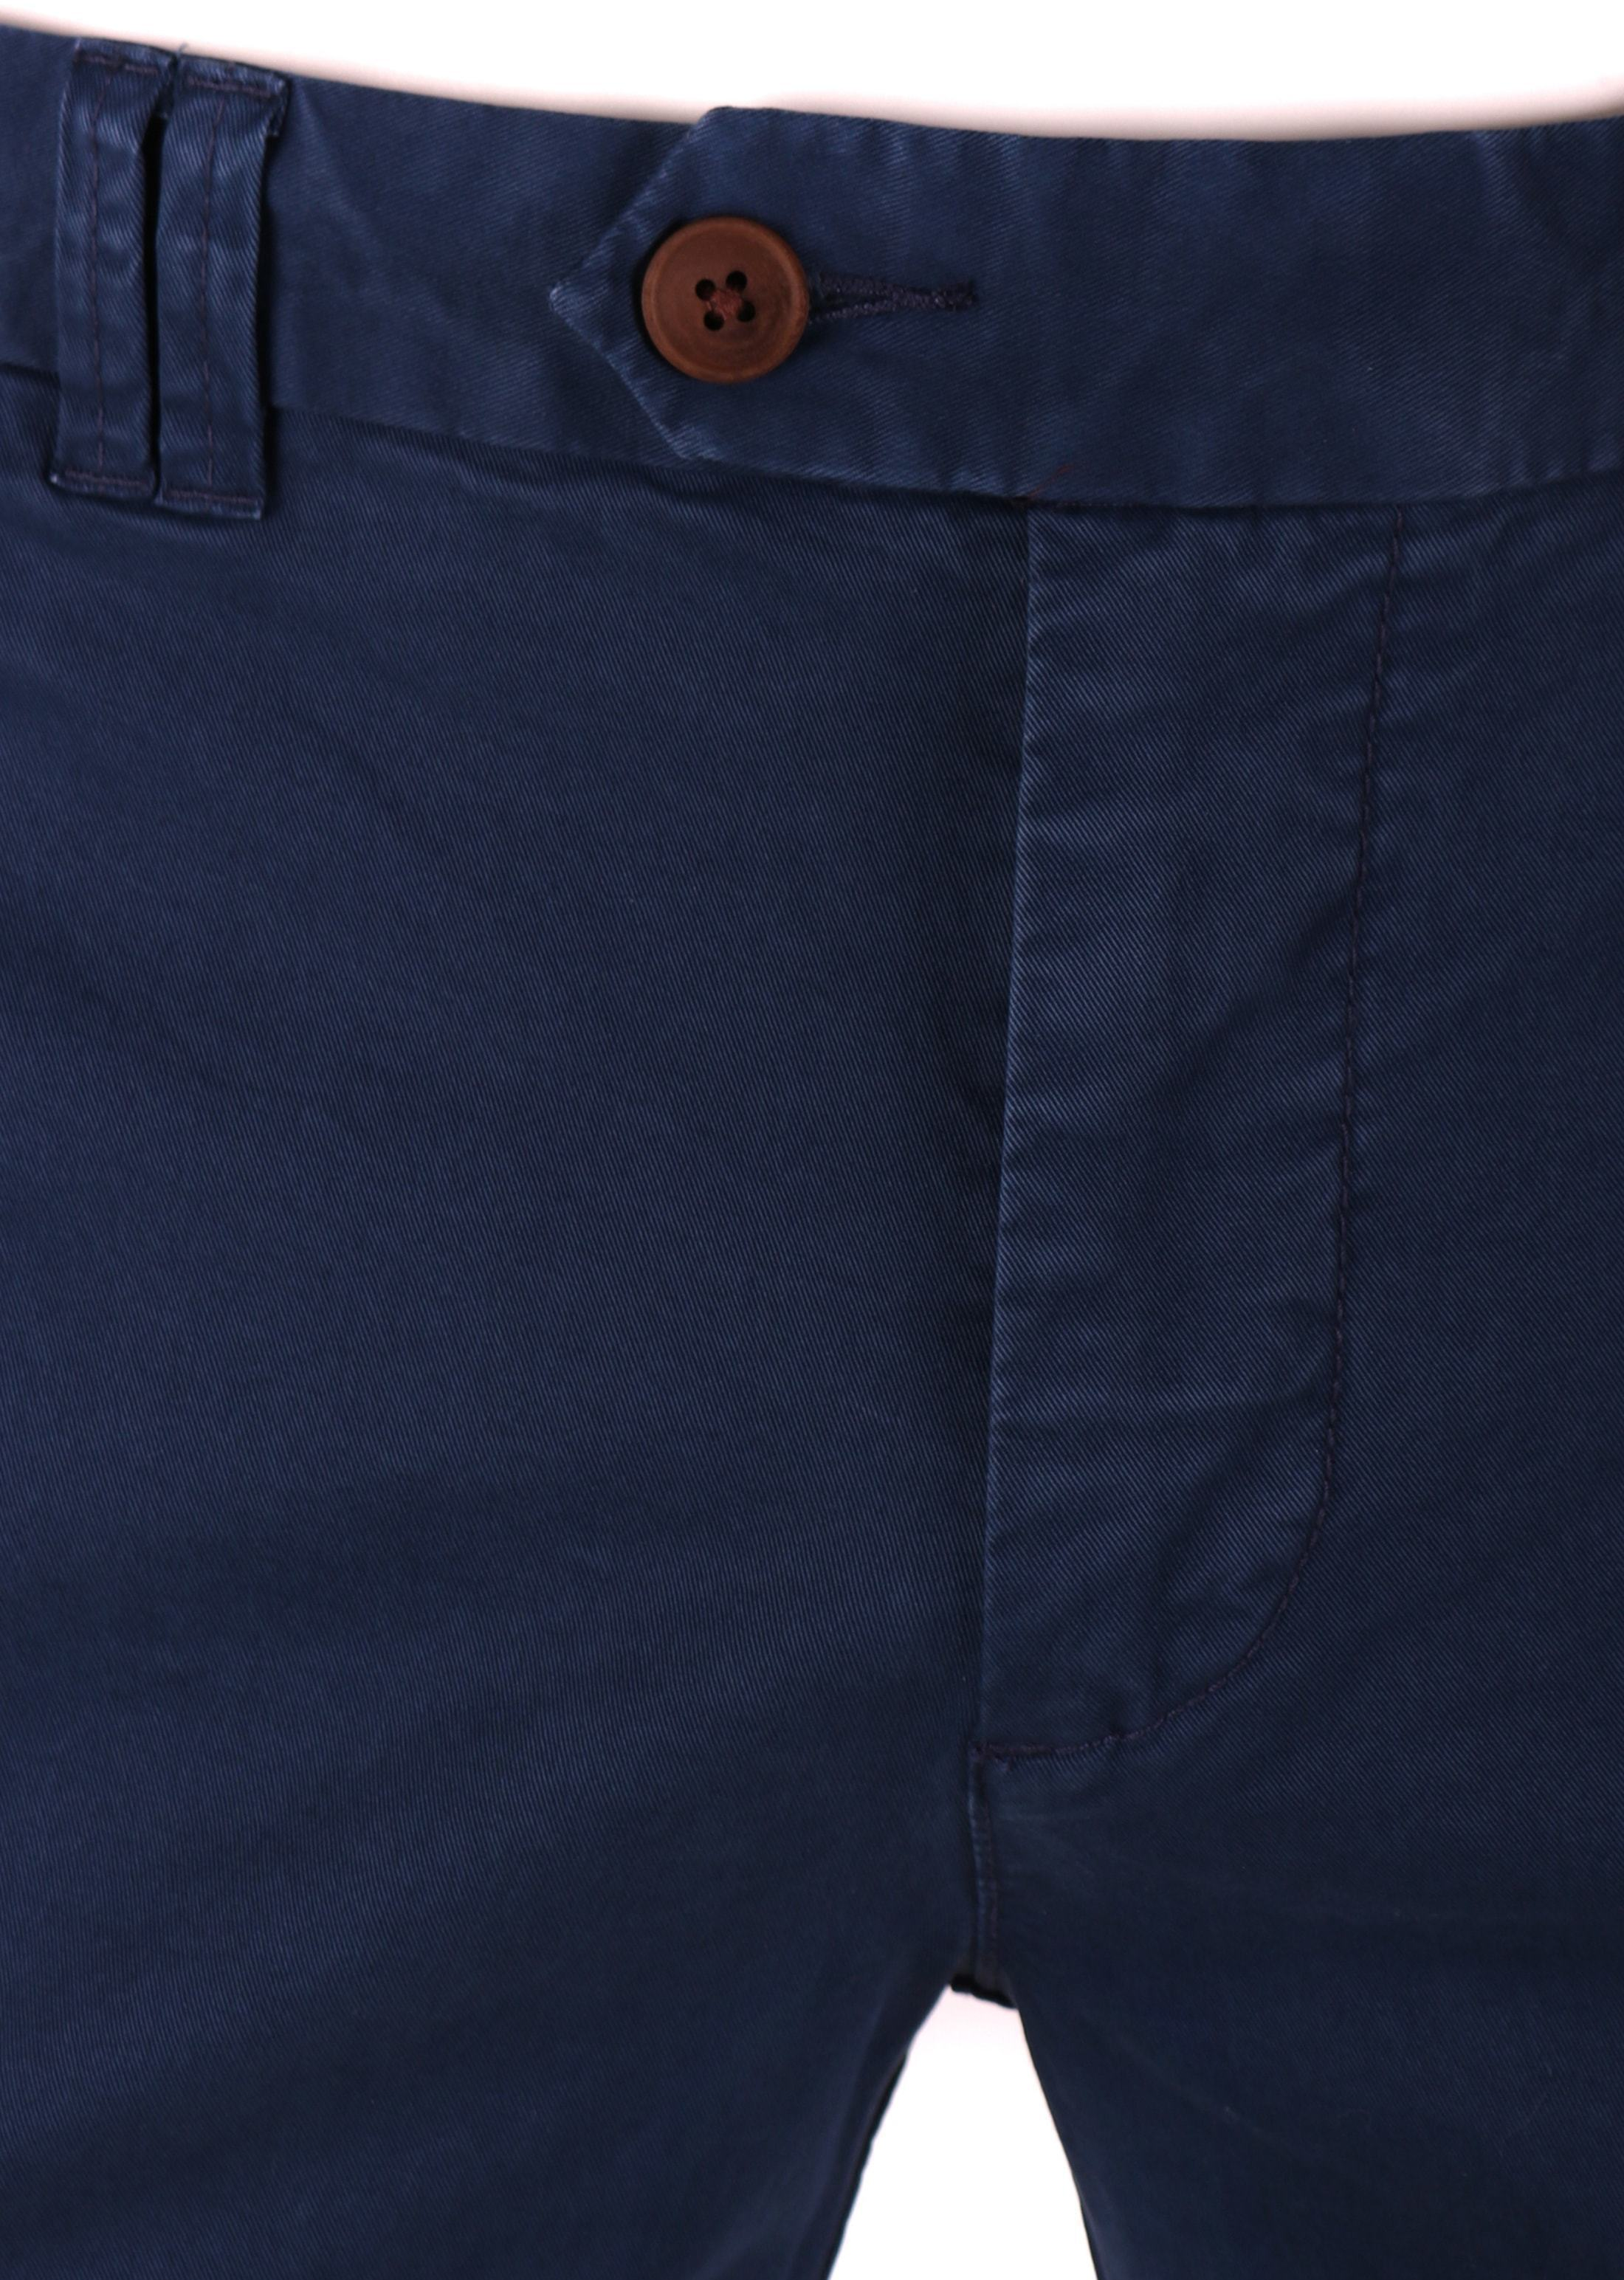 Suitable Chino Broek Donkerblauw foto 2